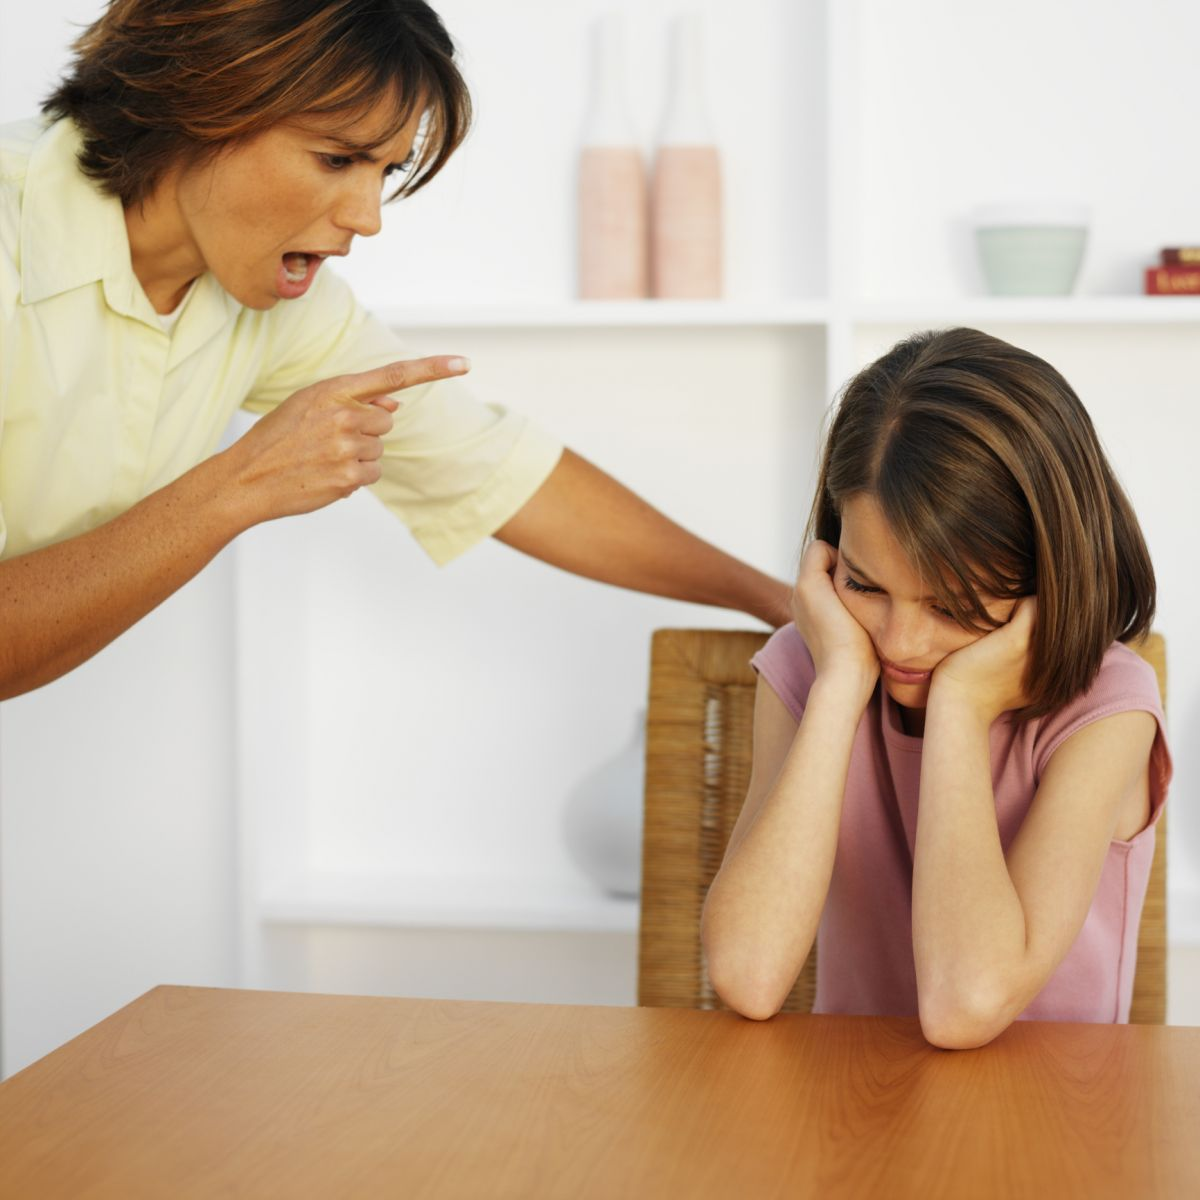 parents strict essay Why parents are sometimes strict children of incredibly strict parents have also been shown to be more likely to develop weight problems.